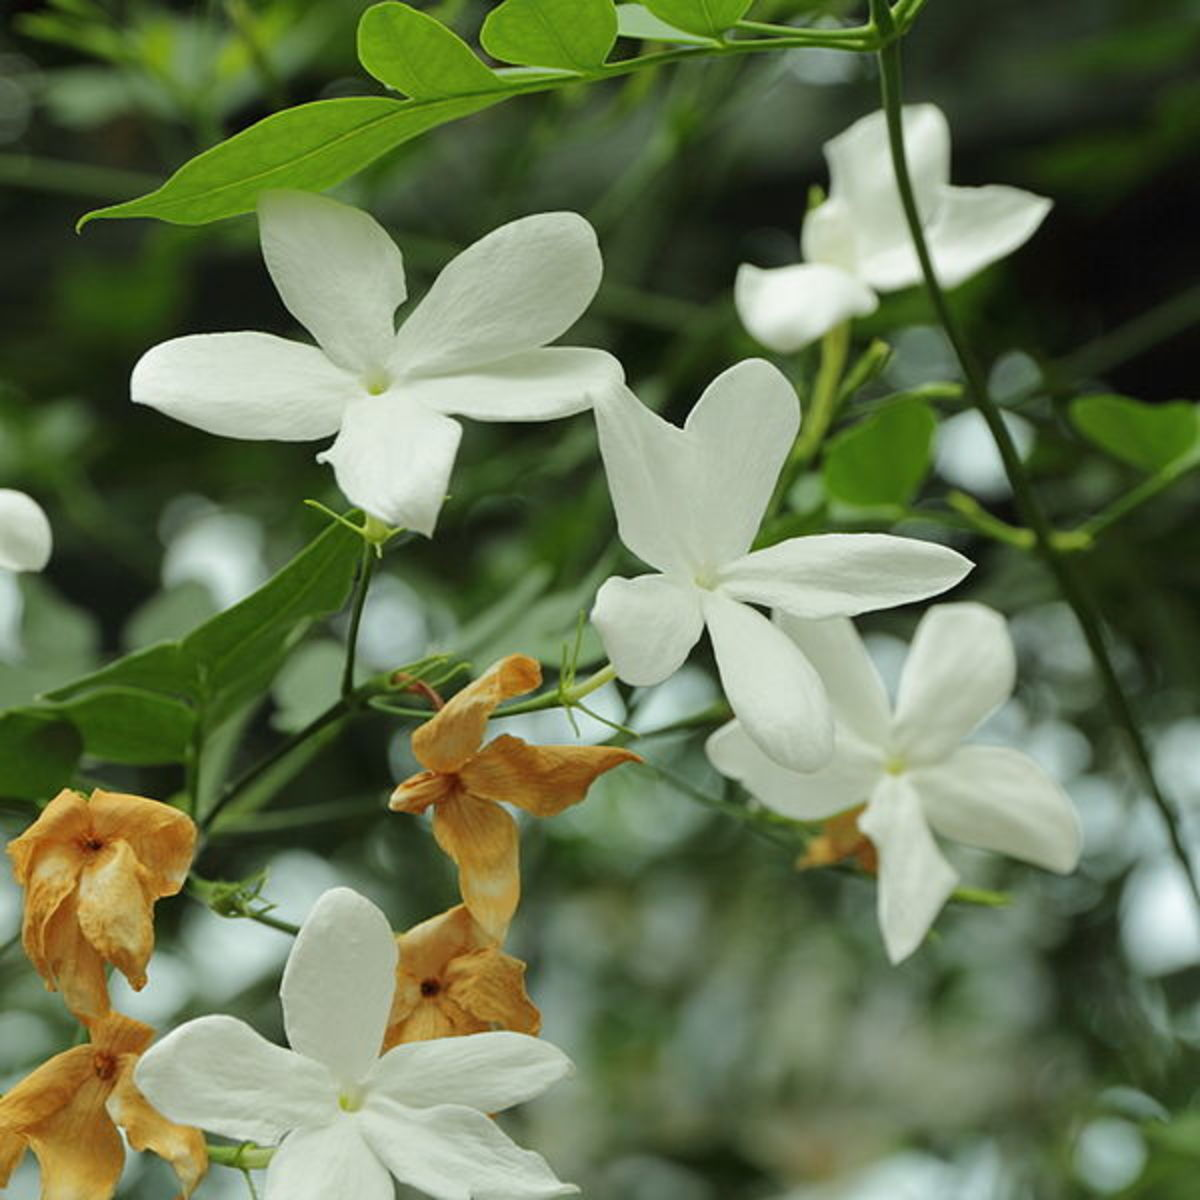 Jasmine flowers (Jasminum officinale).